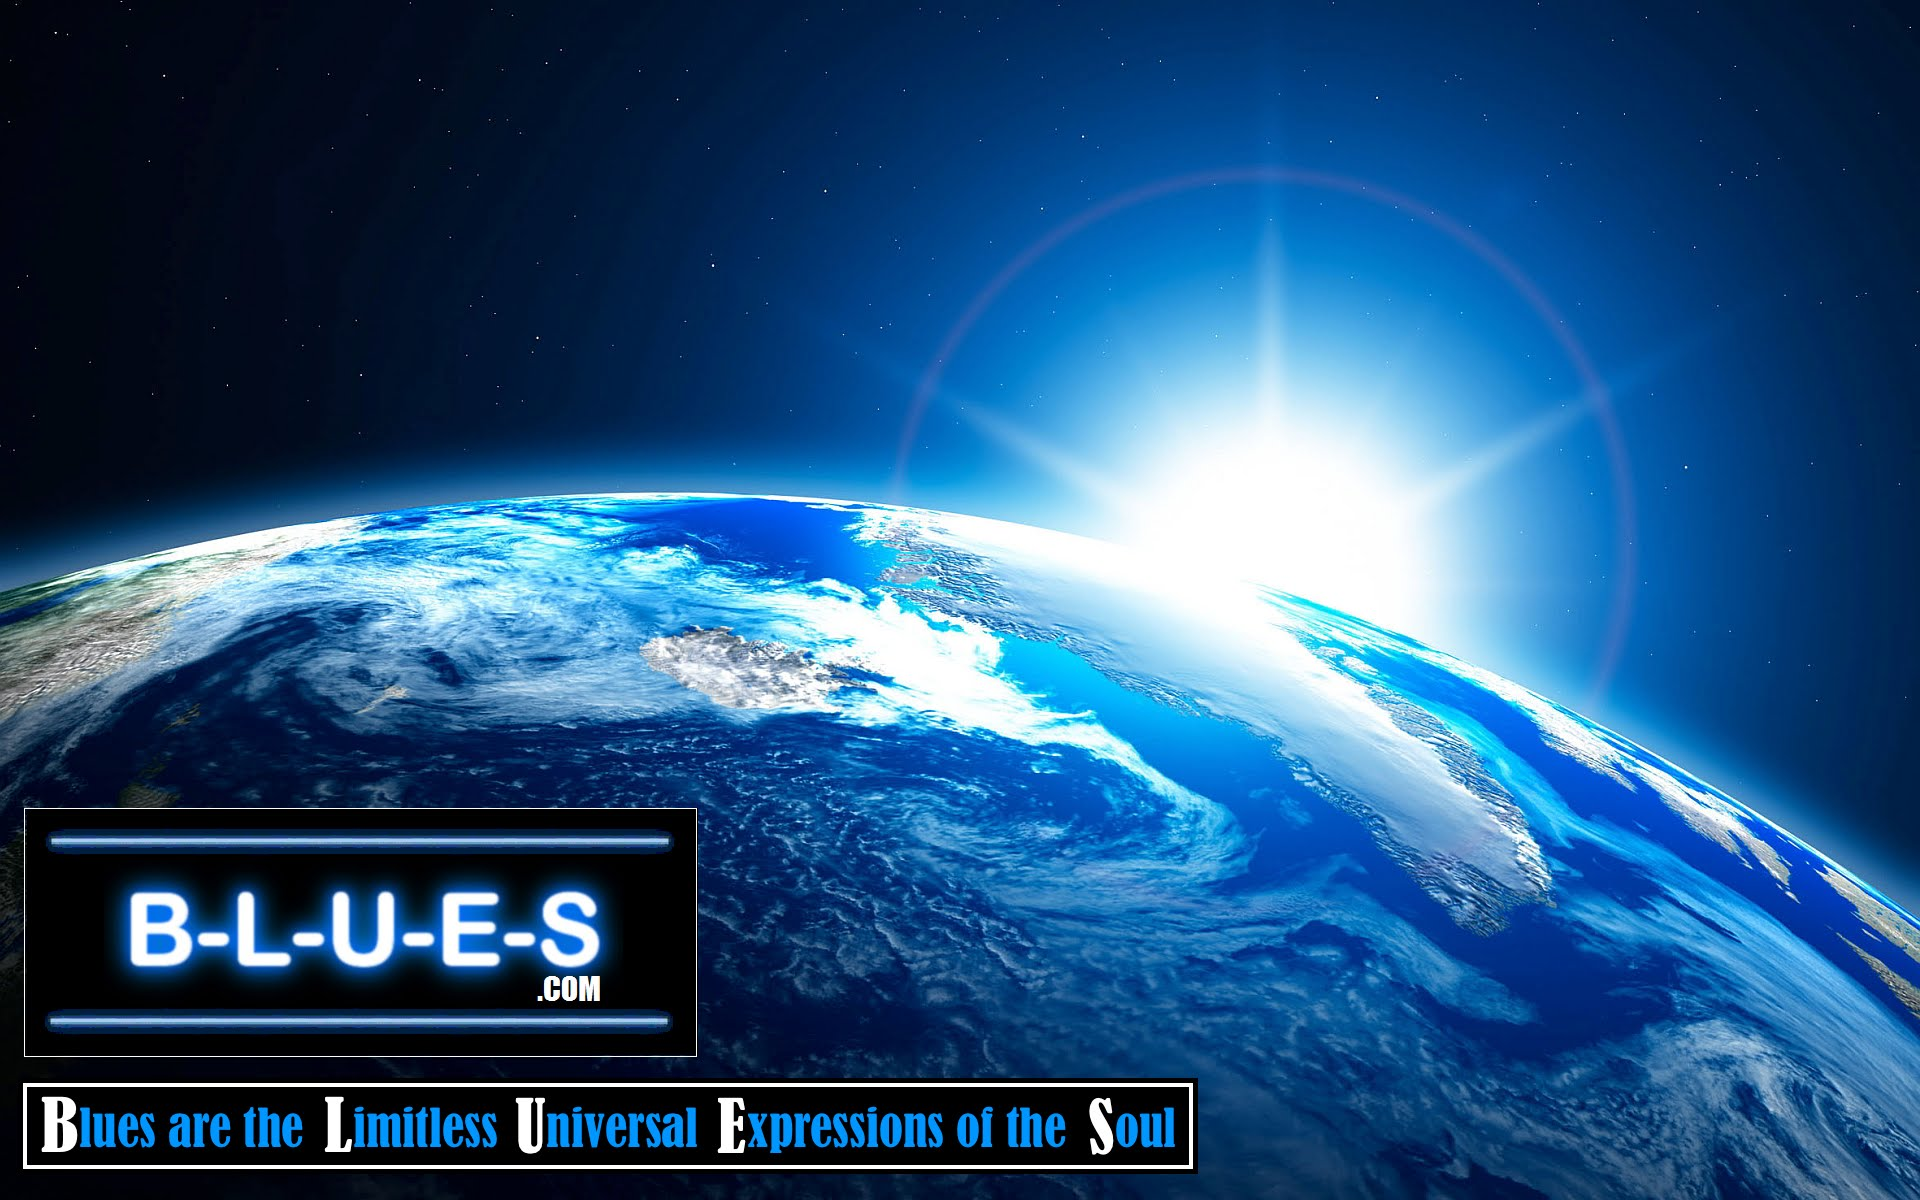 B-L-U-E-S.com Blues Earth Wallpaper